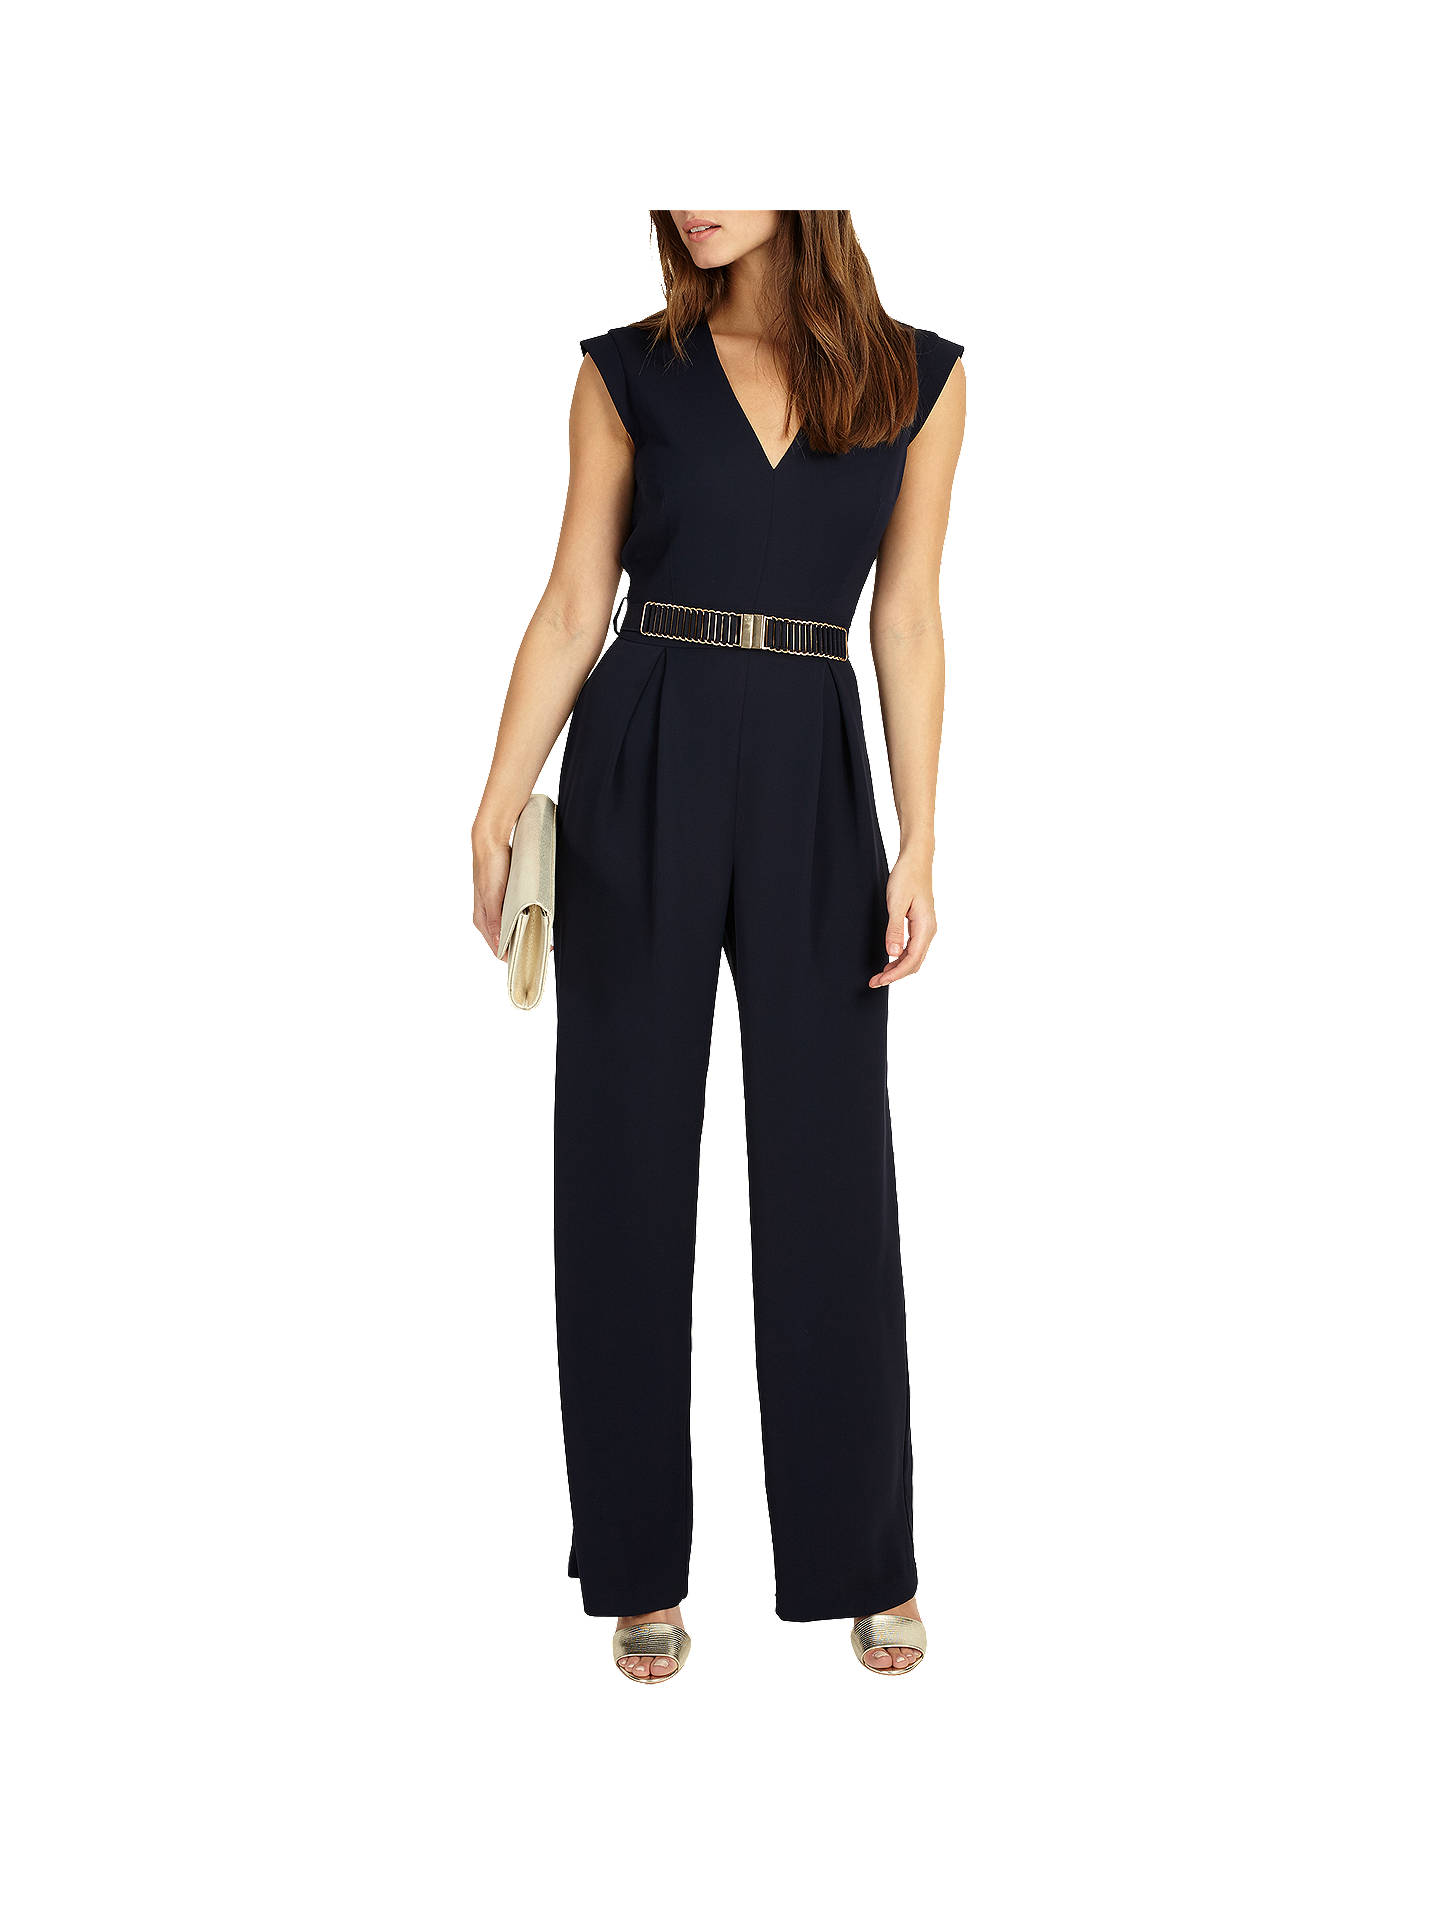 3994107ca0 Buy Phase Eight Adelaide Belted Jumpsuit